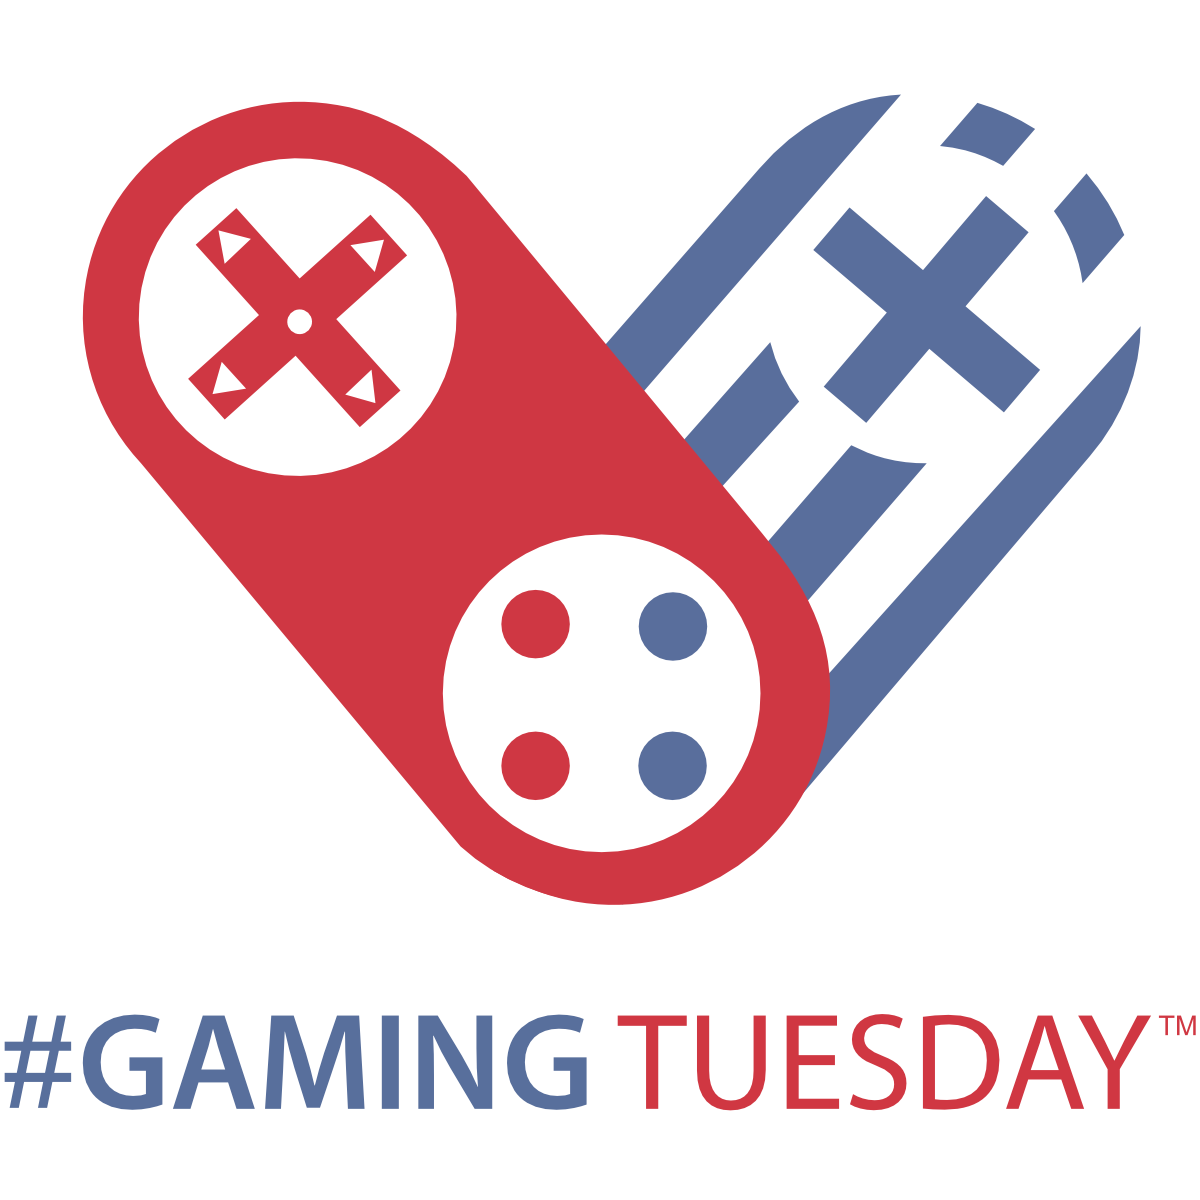 GamingTuesday logo in color